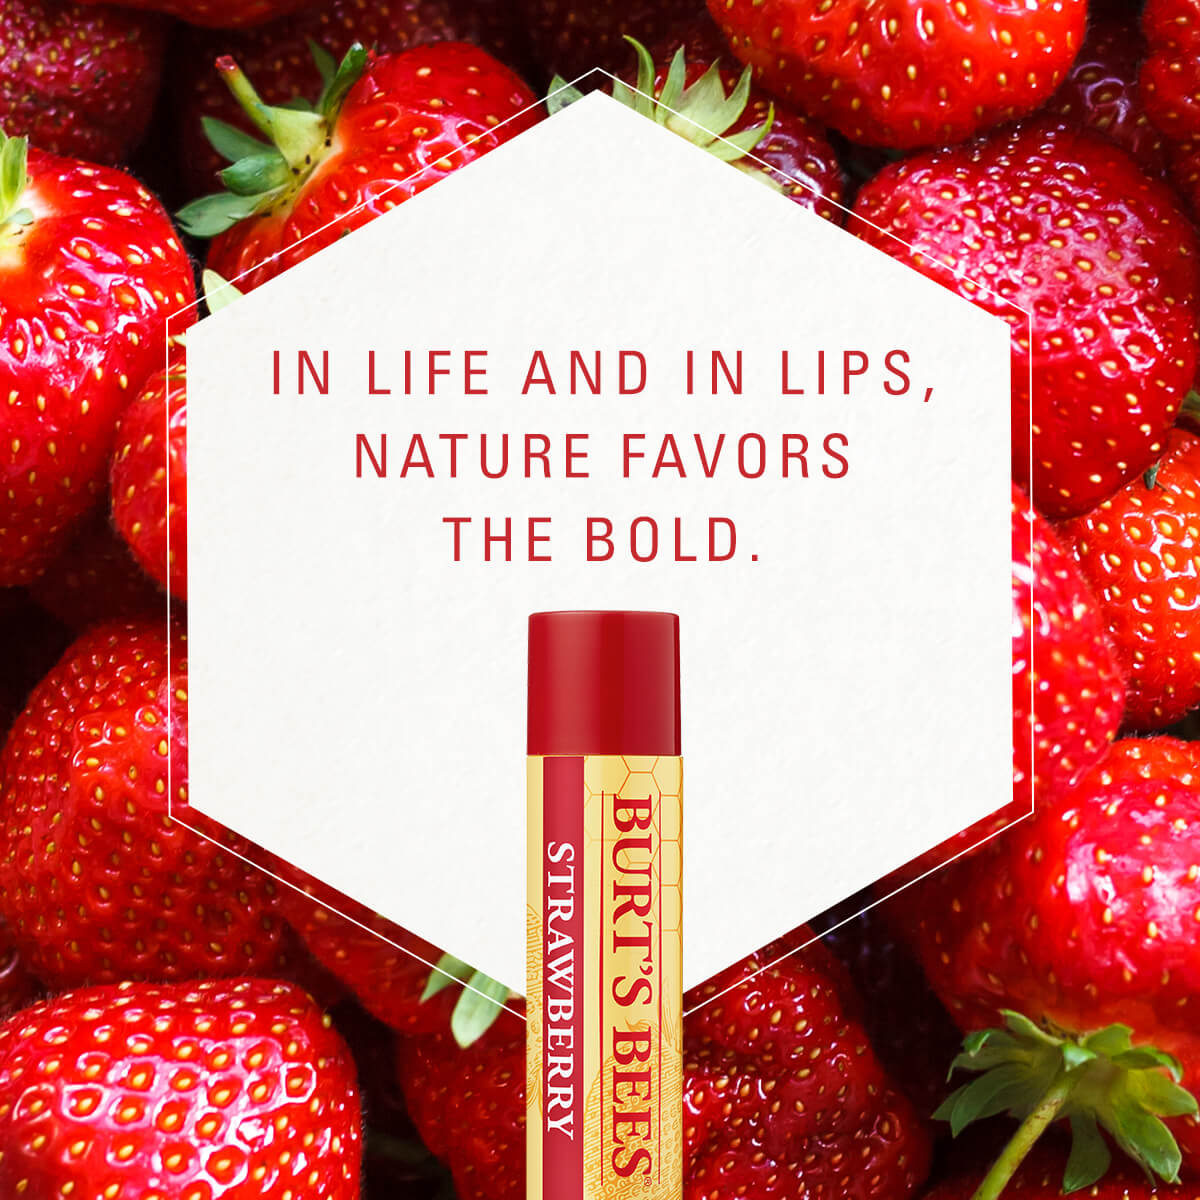 Strawberry, in life and in lips, nature favours the bold